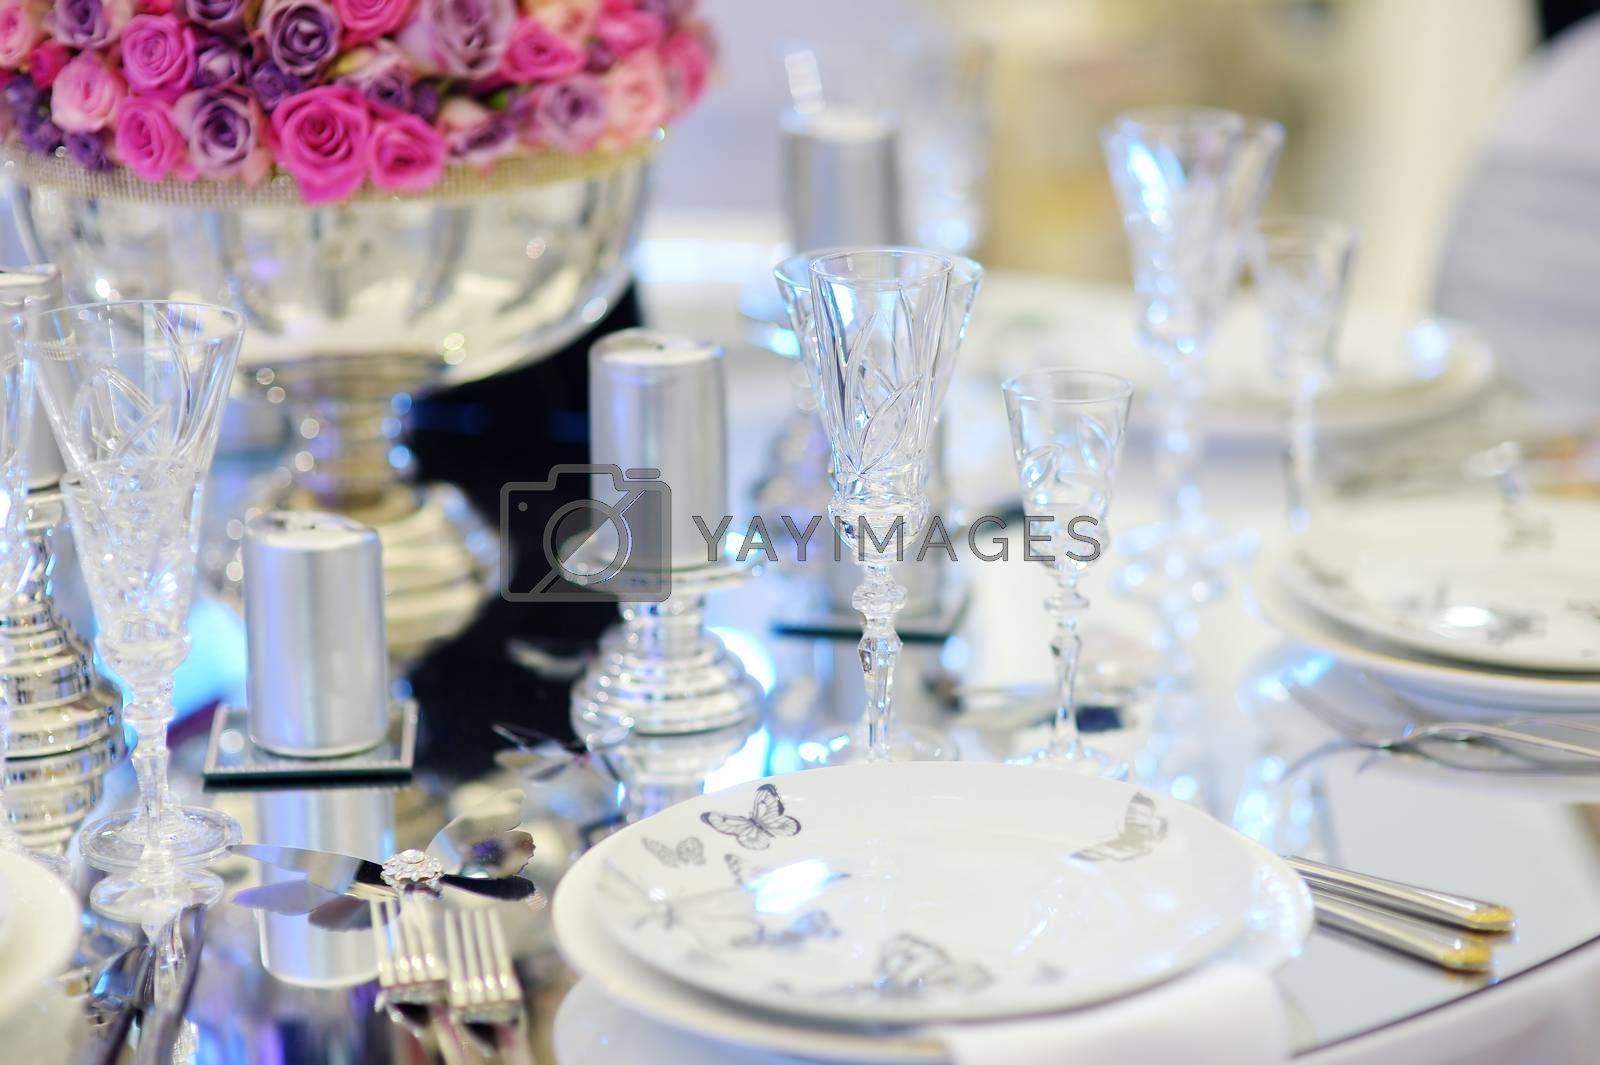 Table set for an event party or wedding reception by maximkabb